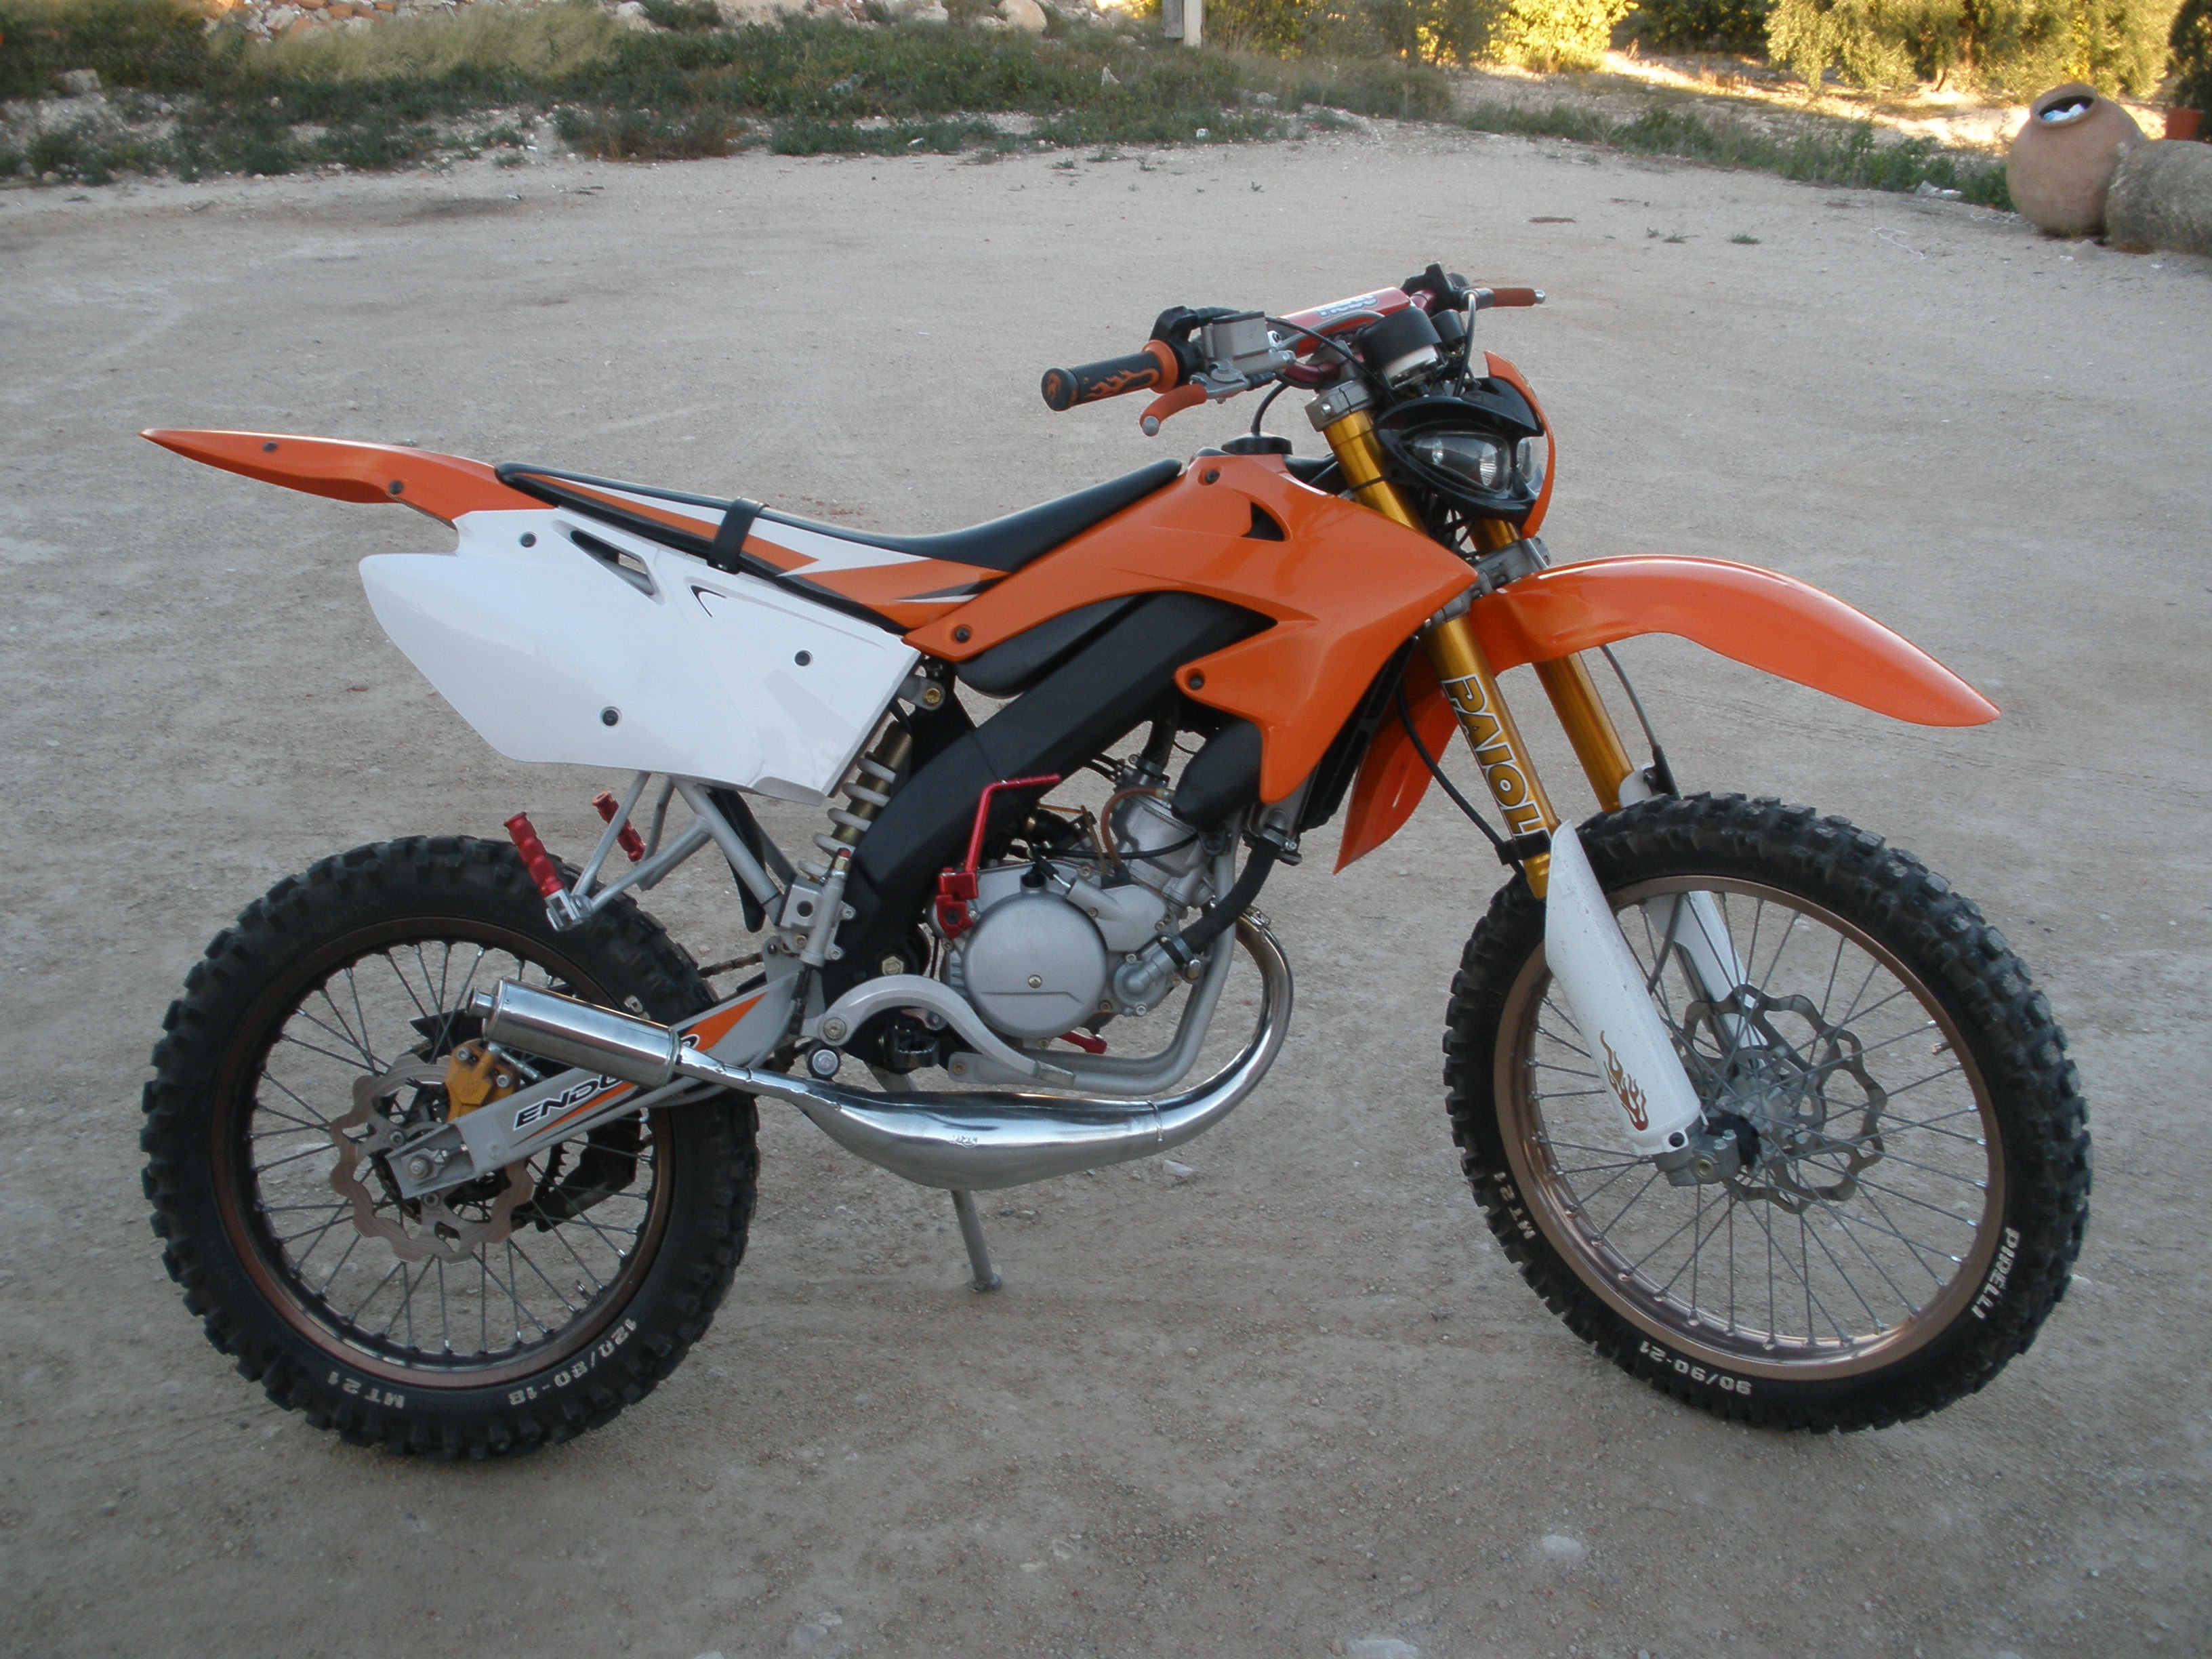 Motorhispania RYZ 49 Supermotard images #112556